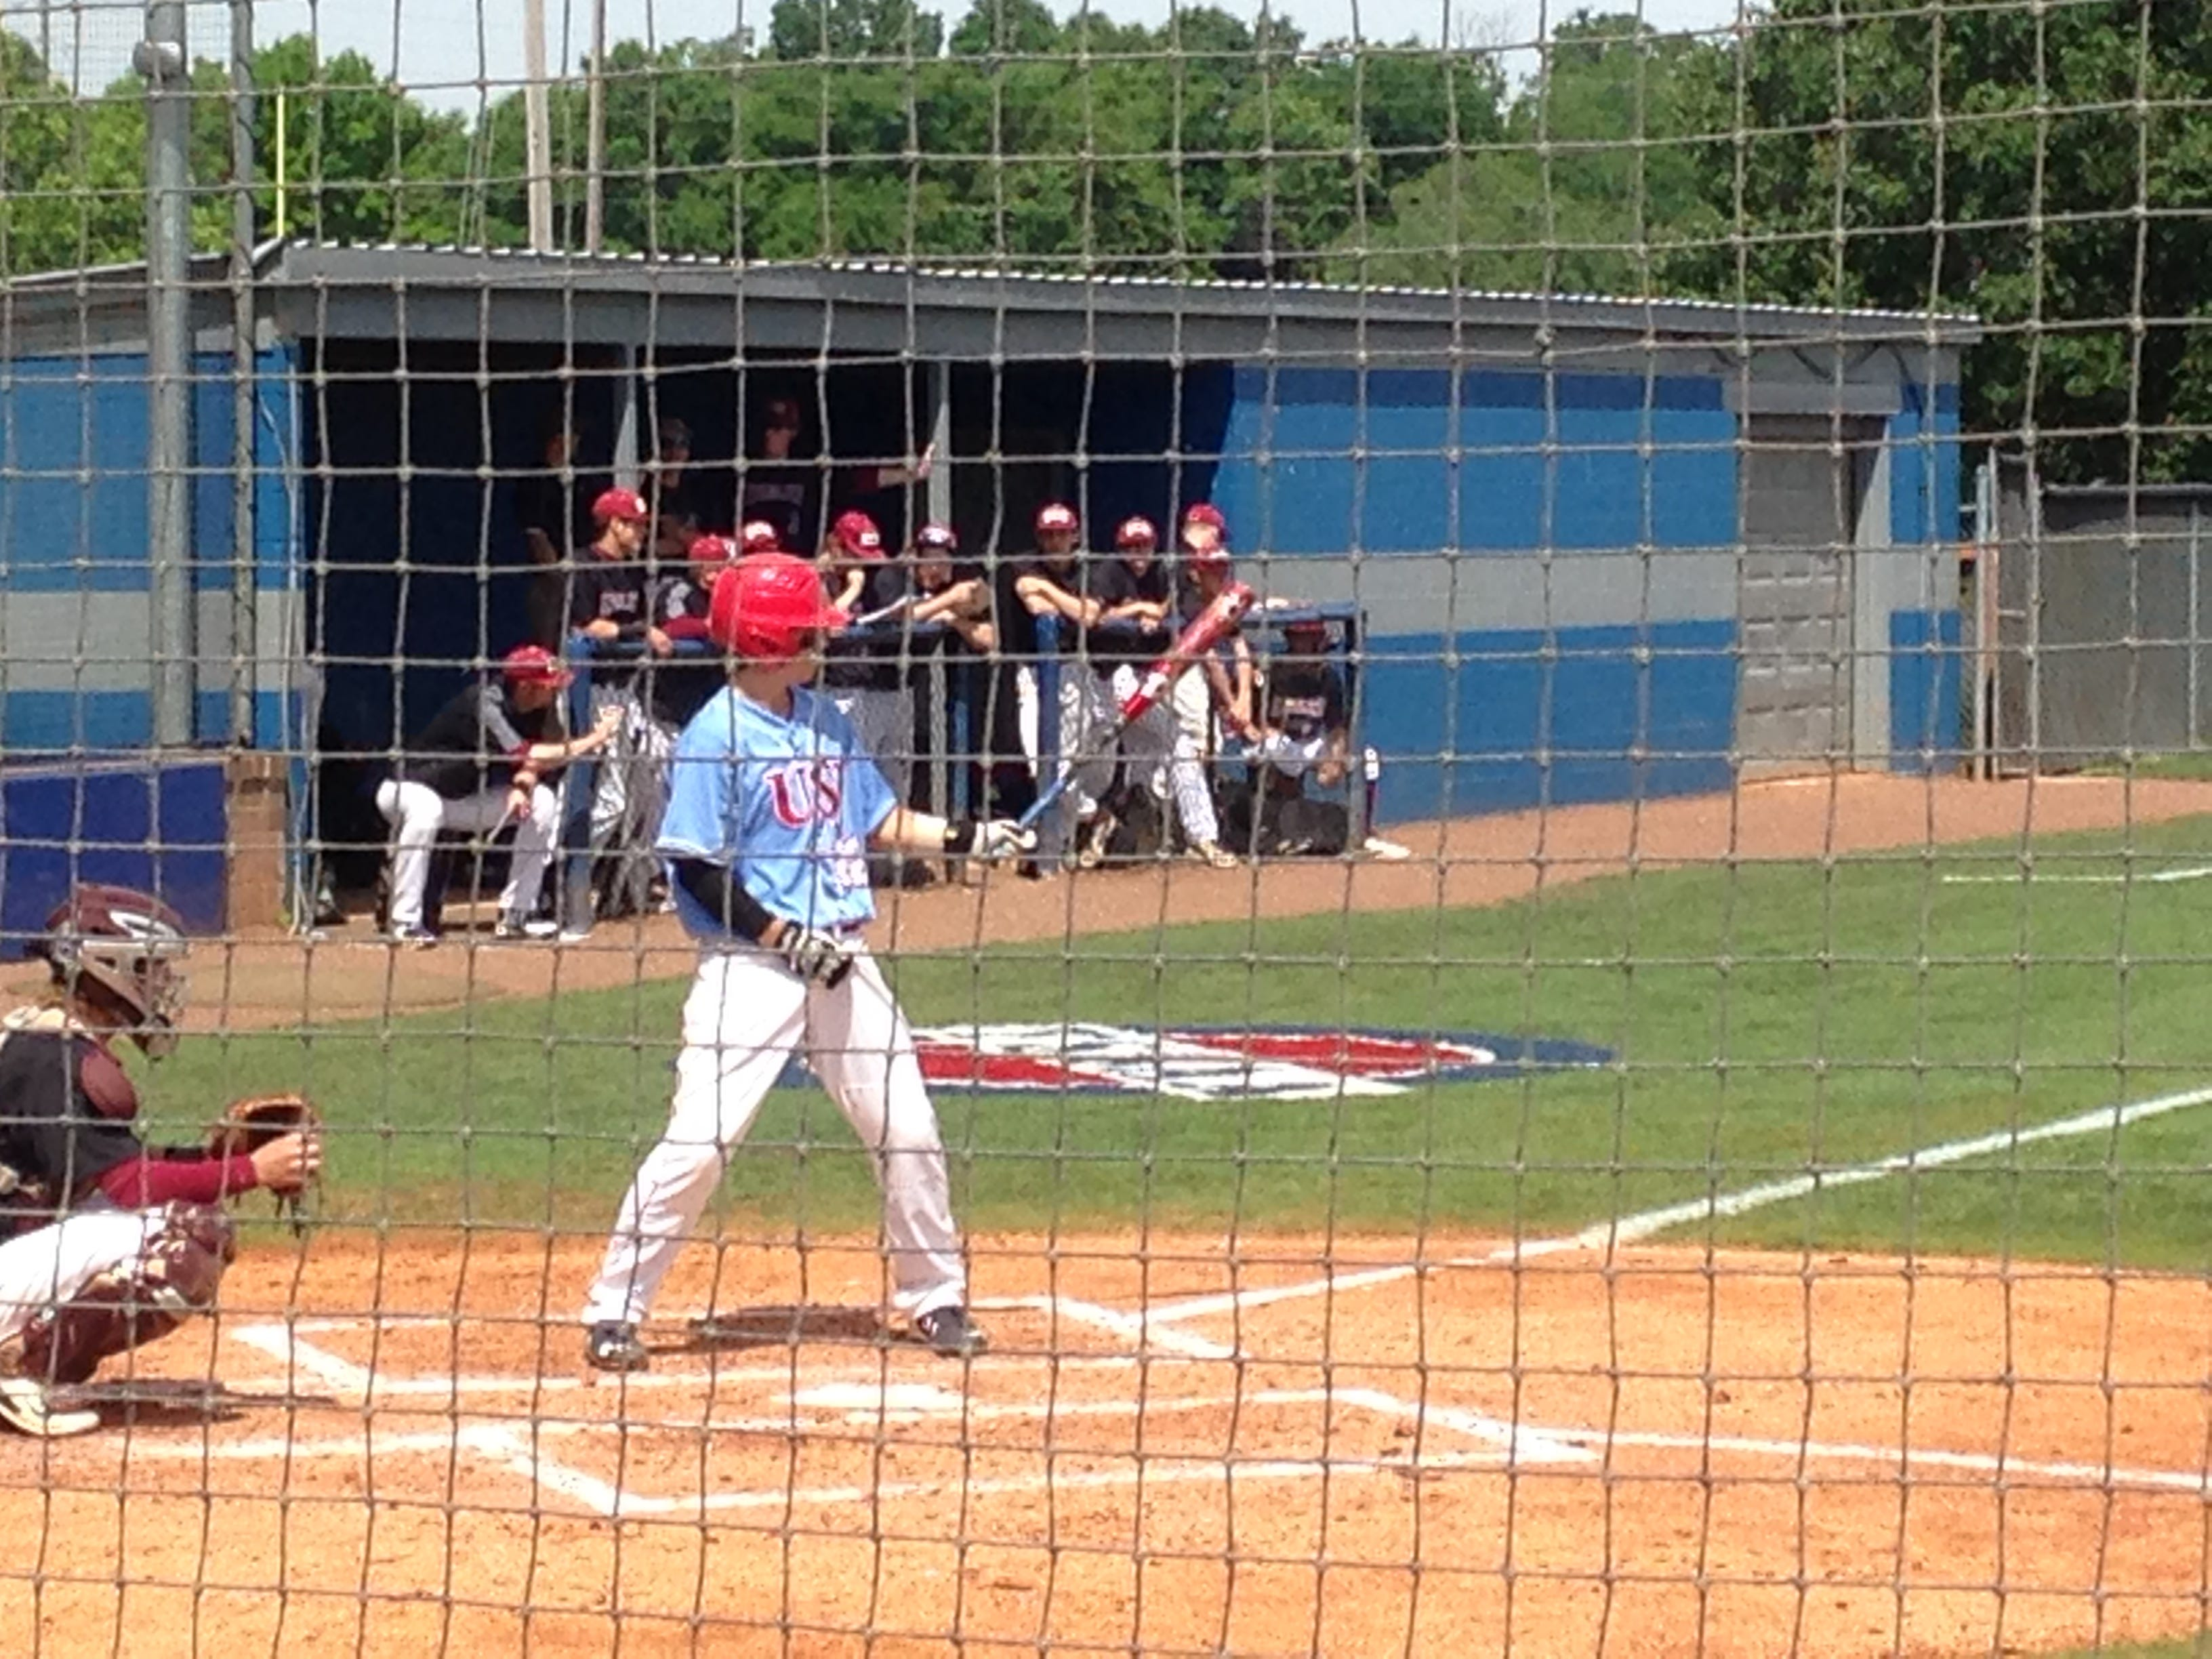 USJ lost 8-3 to Evangelical Christian School in the state tournament Wednesday.